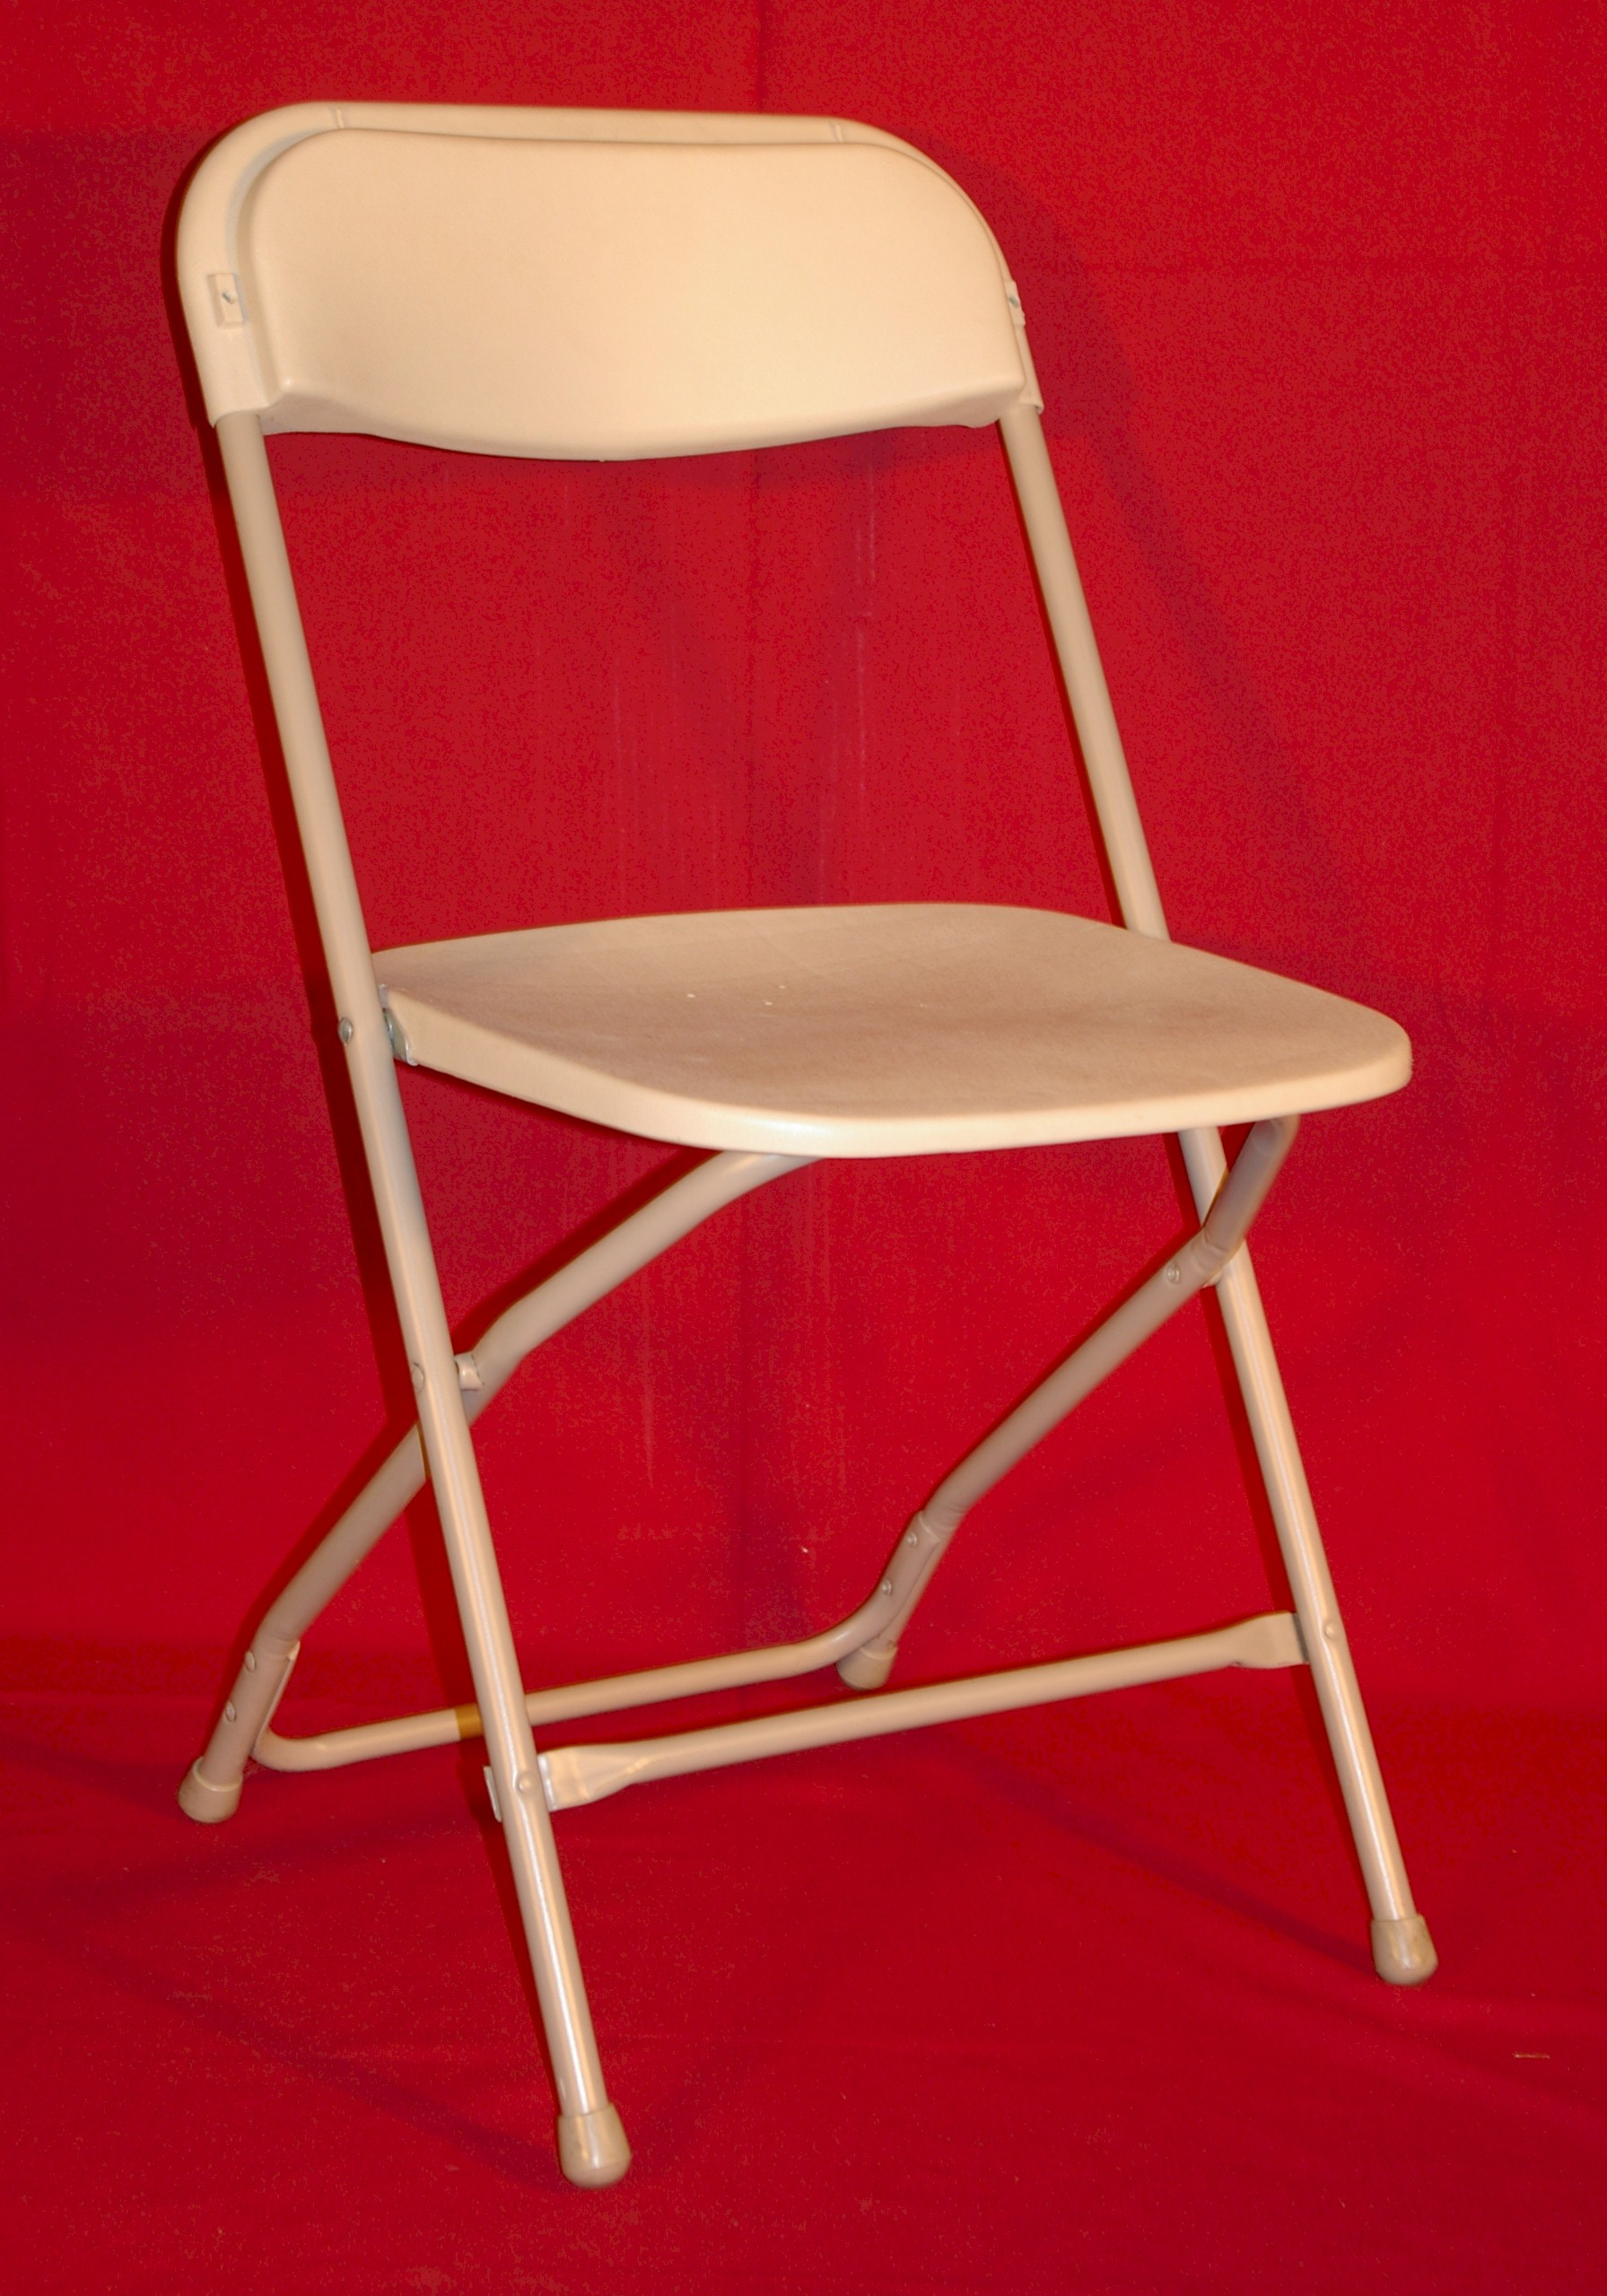 Samsonite Folding Chair Taylor Rental of Torrington